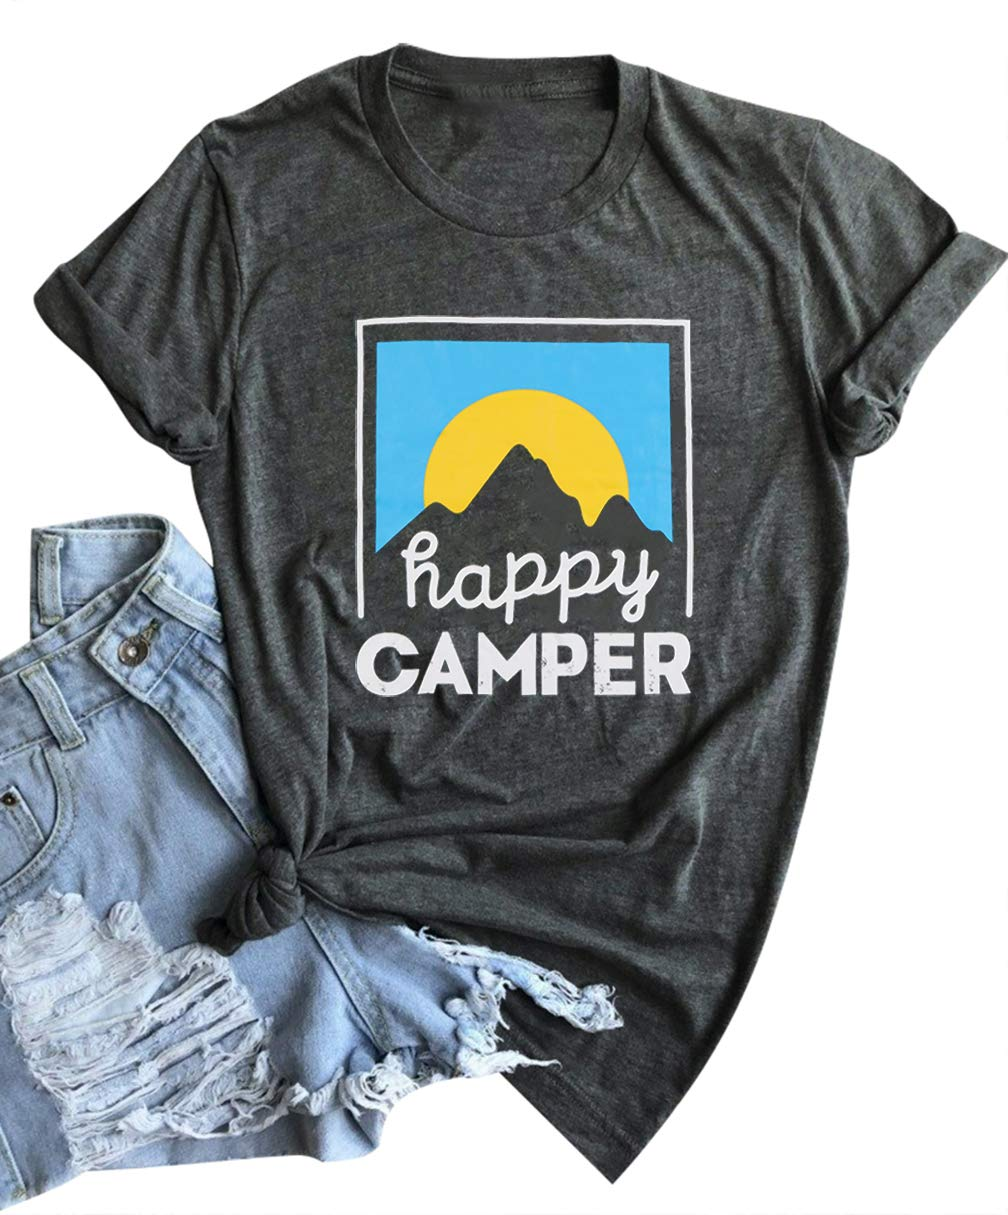 EGELEXY Happy Camper T-Shirt for Women Funny Letters Printed Graphic Tees Tops Casual O Neck Short Sleeve Tshirt Blouse